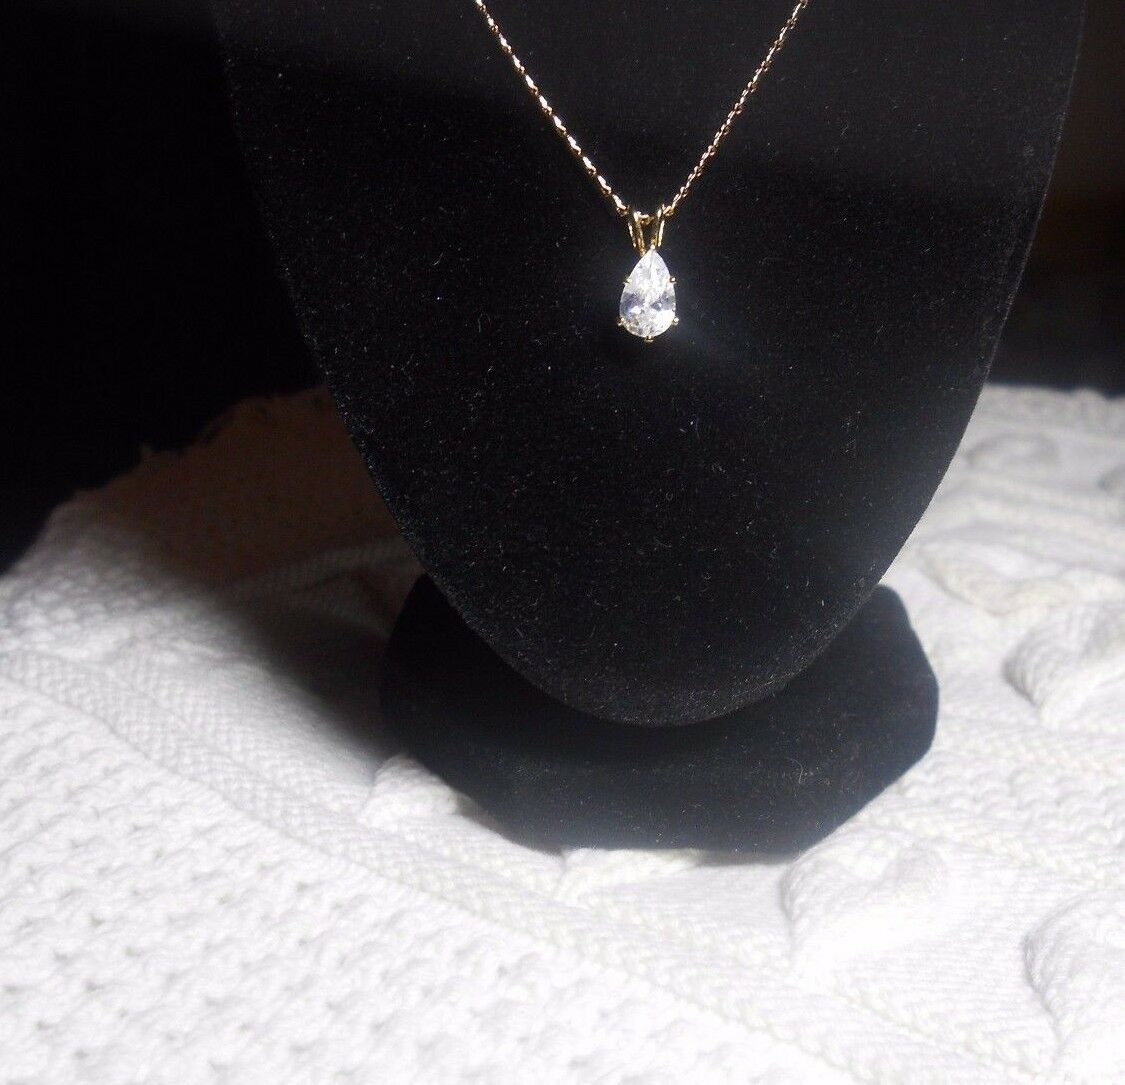 18 KT G F PEAR SOLITAIRE CUBIC ZIRCON PENDANT AND 16 1 2  CHAIN